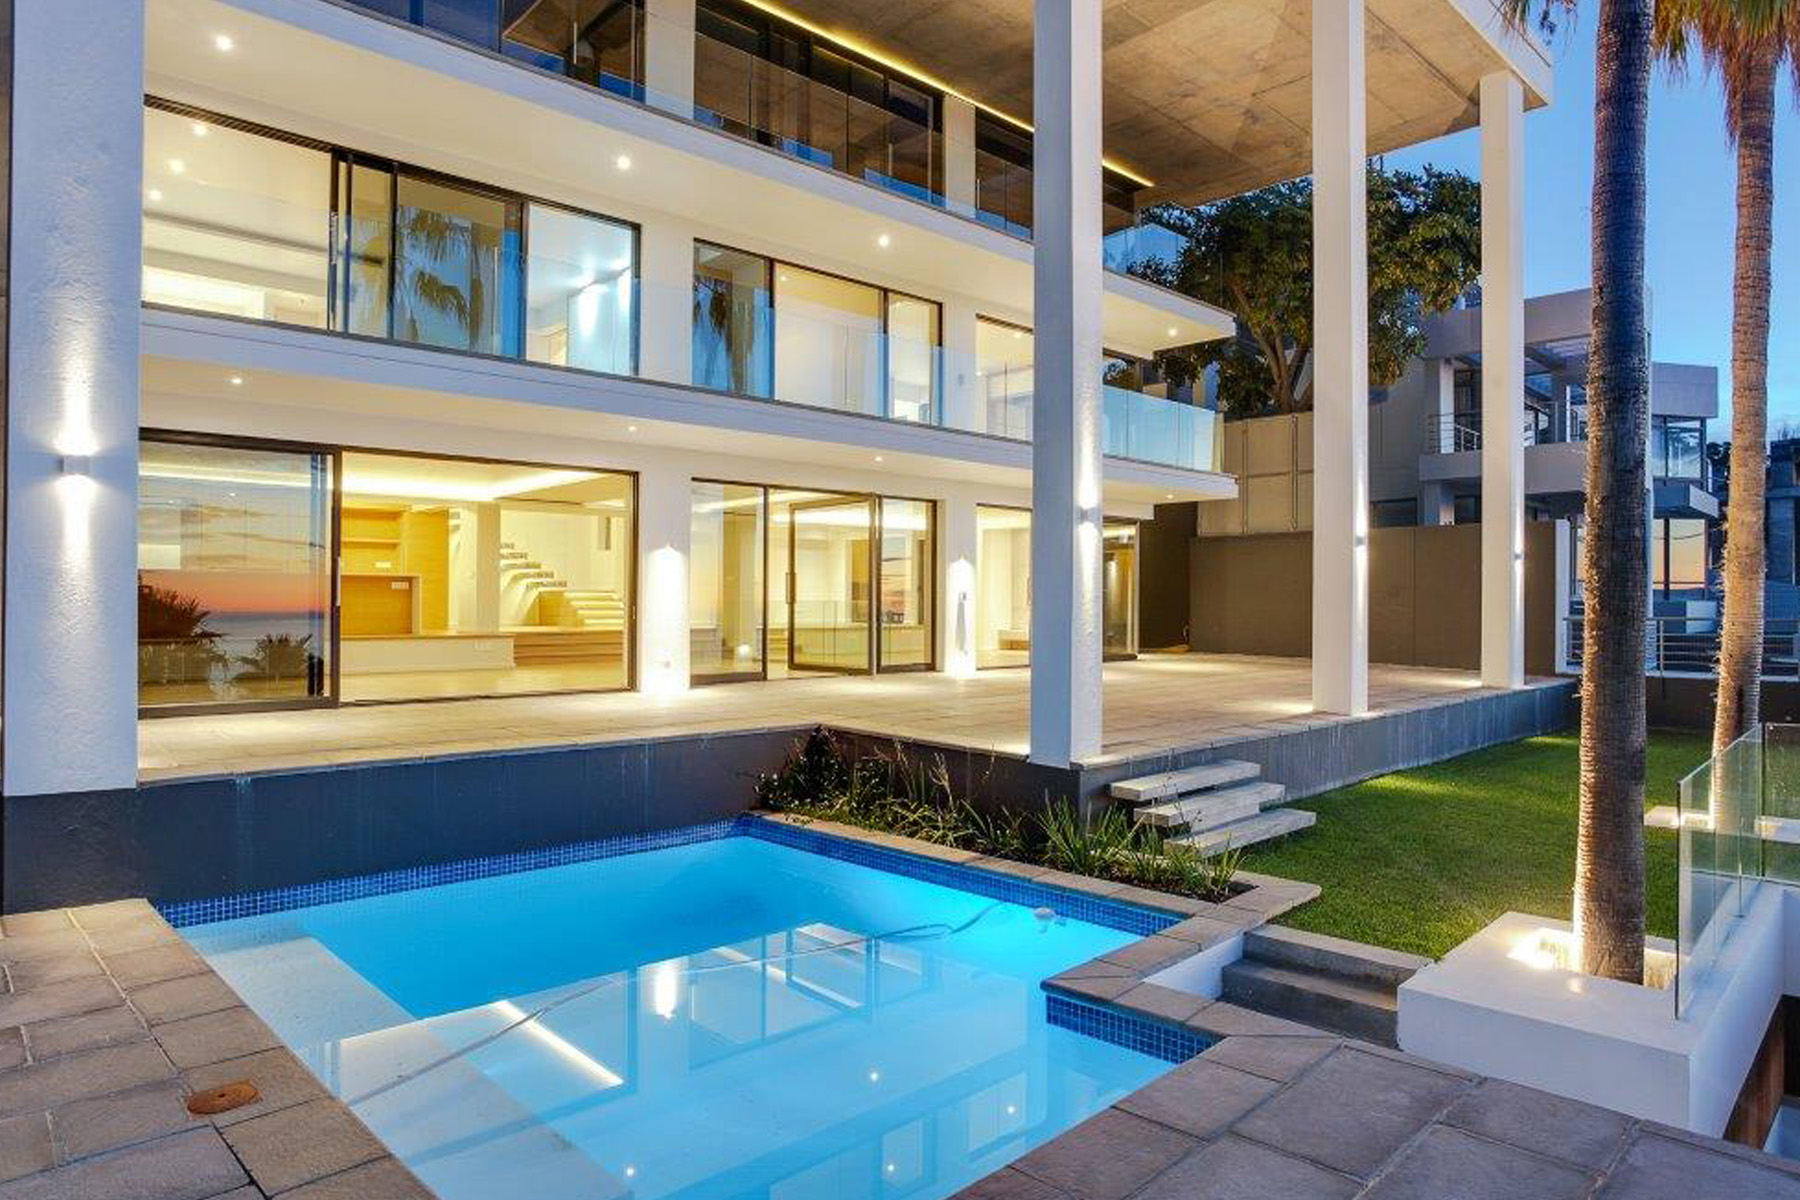 Maison unifamiliale pour l Vente à Fresnaye Cape Town, Cap-Occidental, 8001 Afrique Du Sud